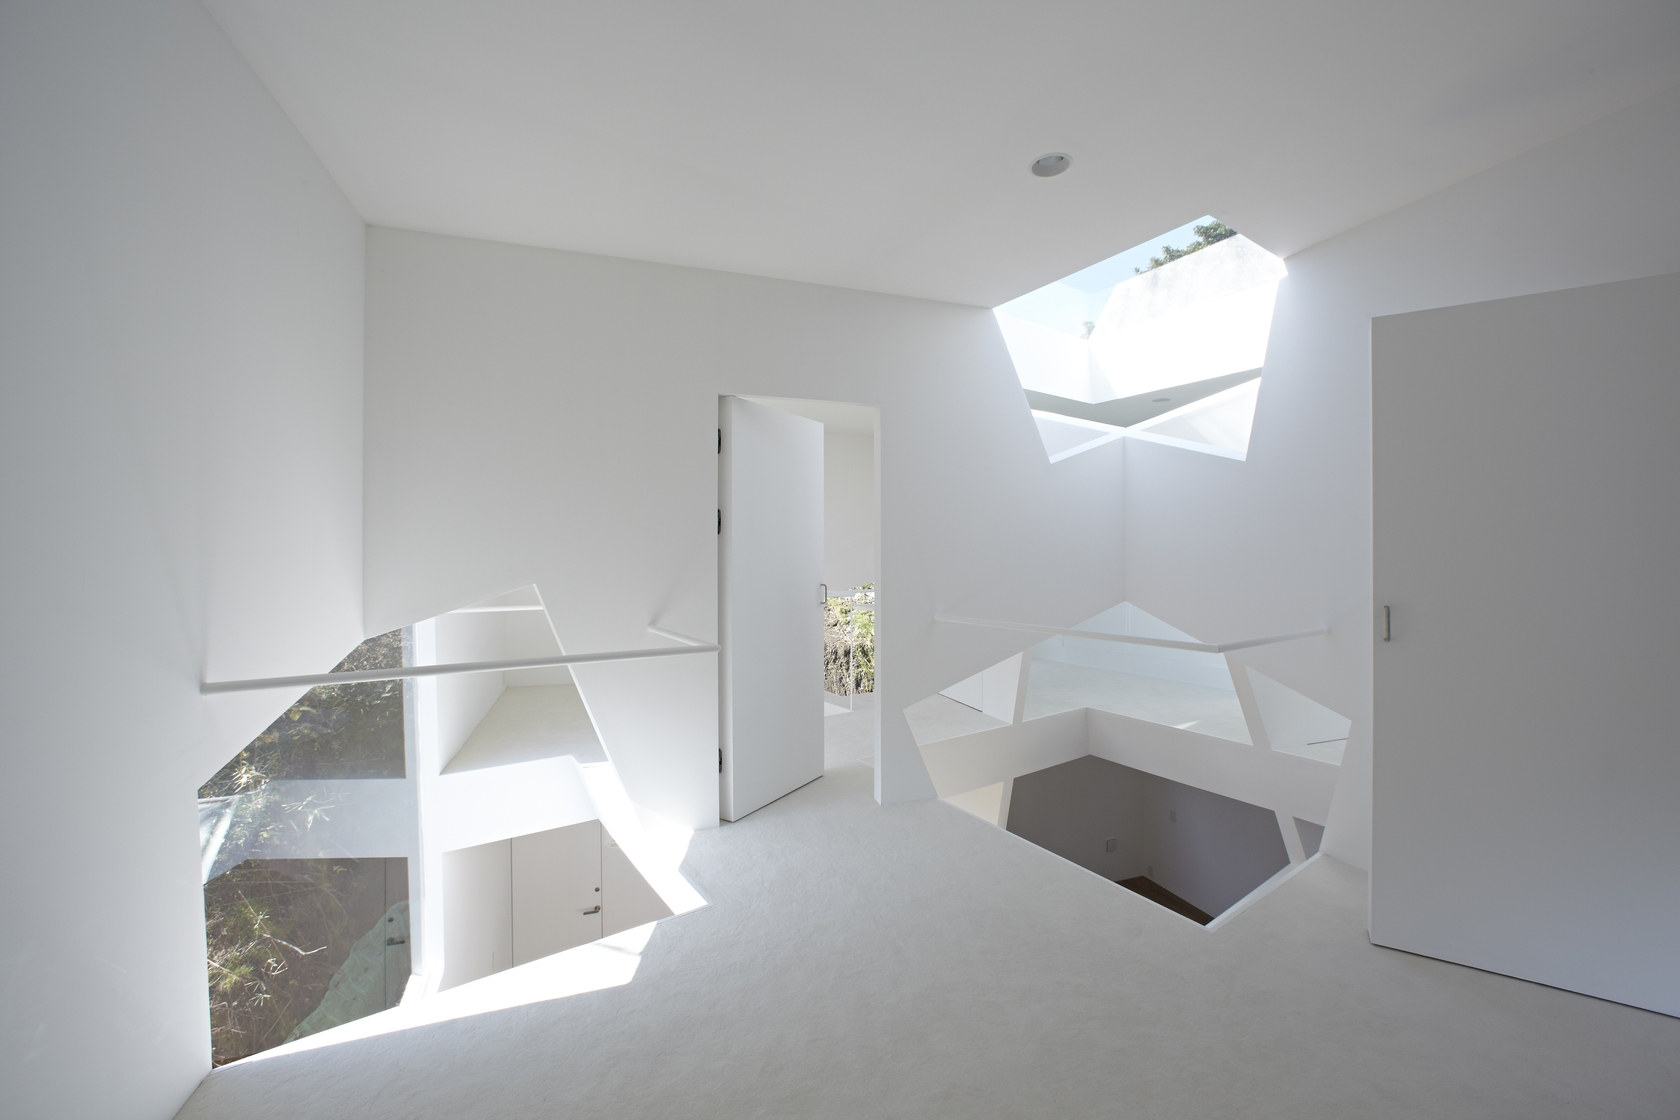 Creative Skylights - Minimalist home in the mountains